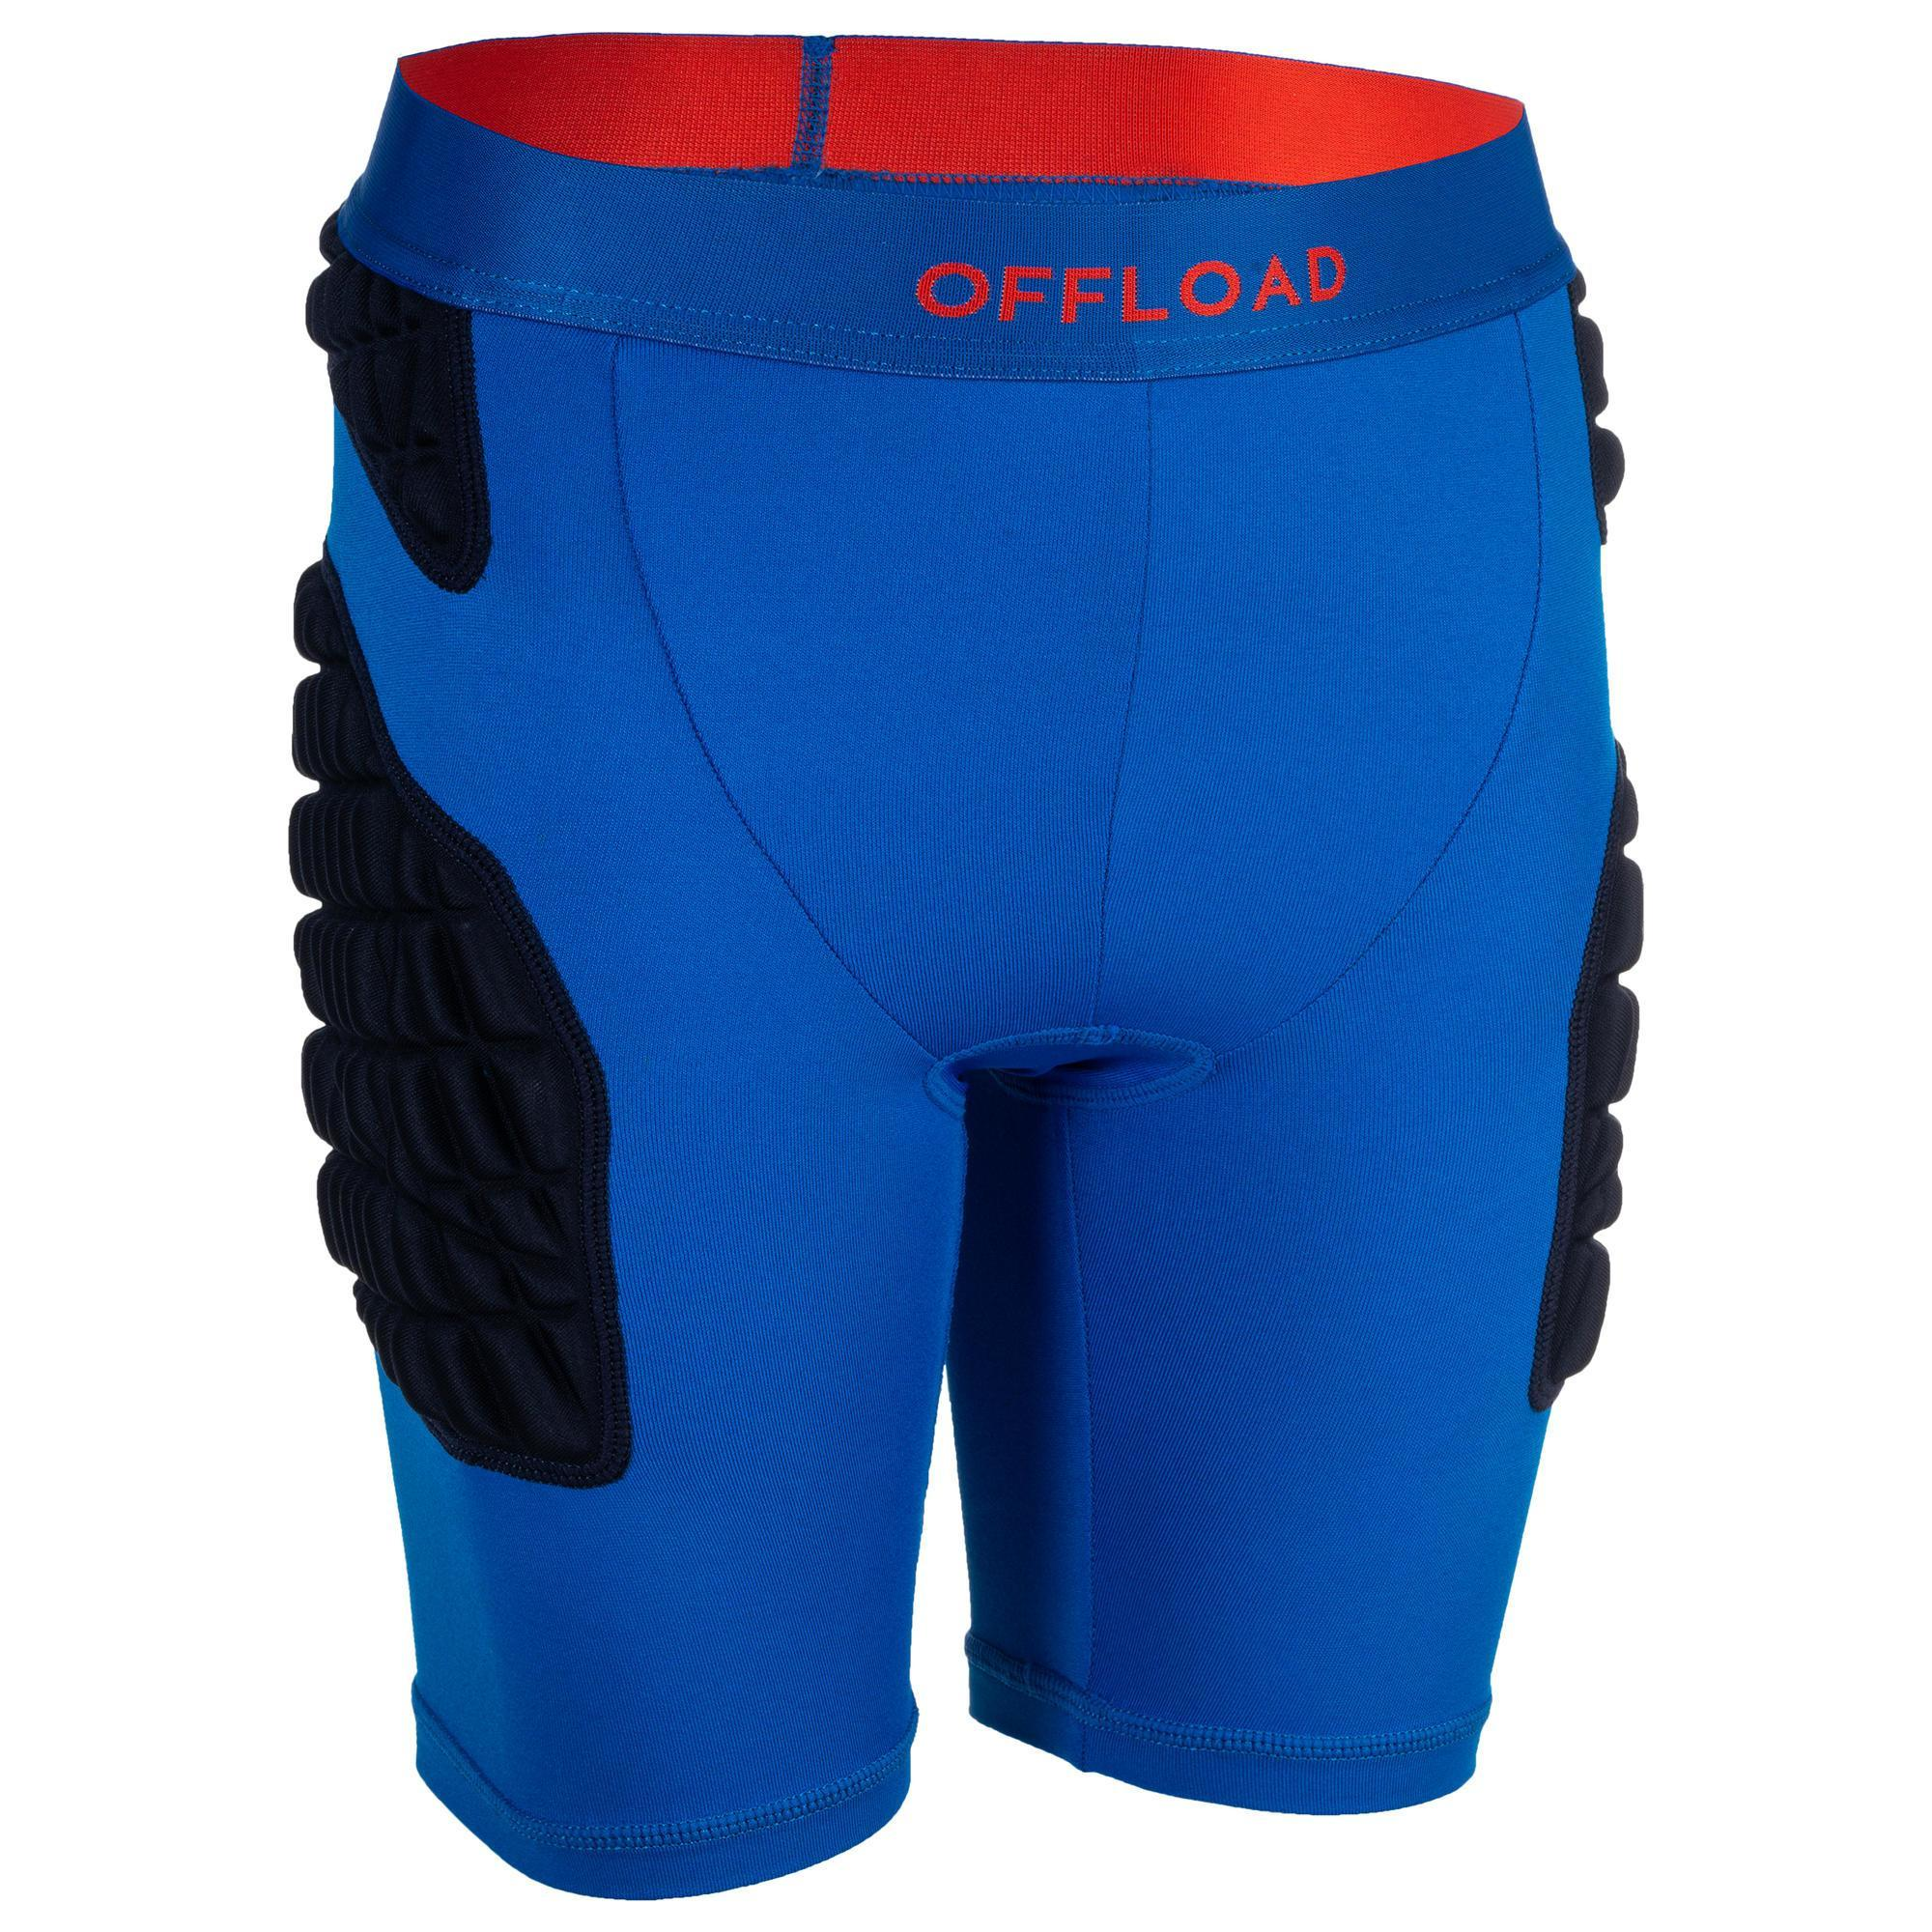 Sous short de protection rugby R500 enfant